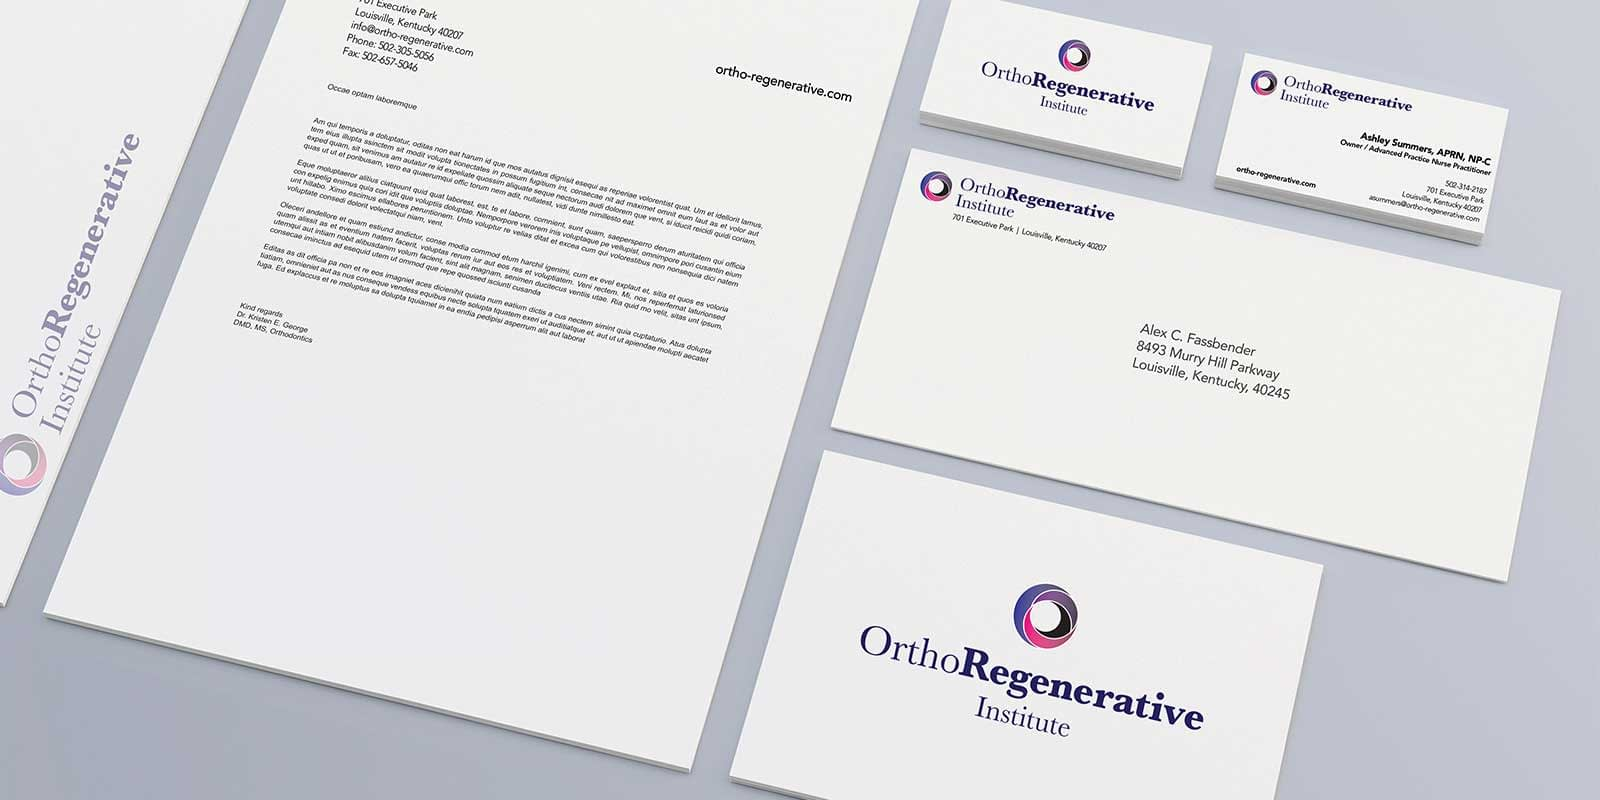 OrthoRegenerative Institute Brand Collateral by Gold Creative Design in Louisville, KY - Stationary Set